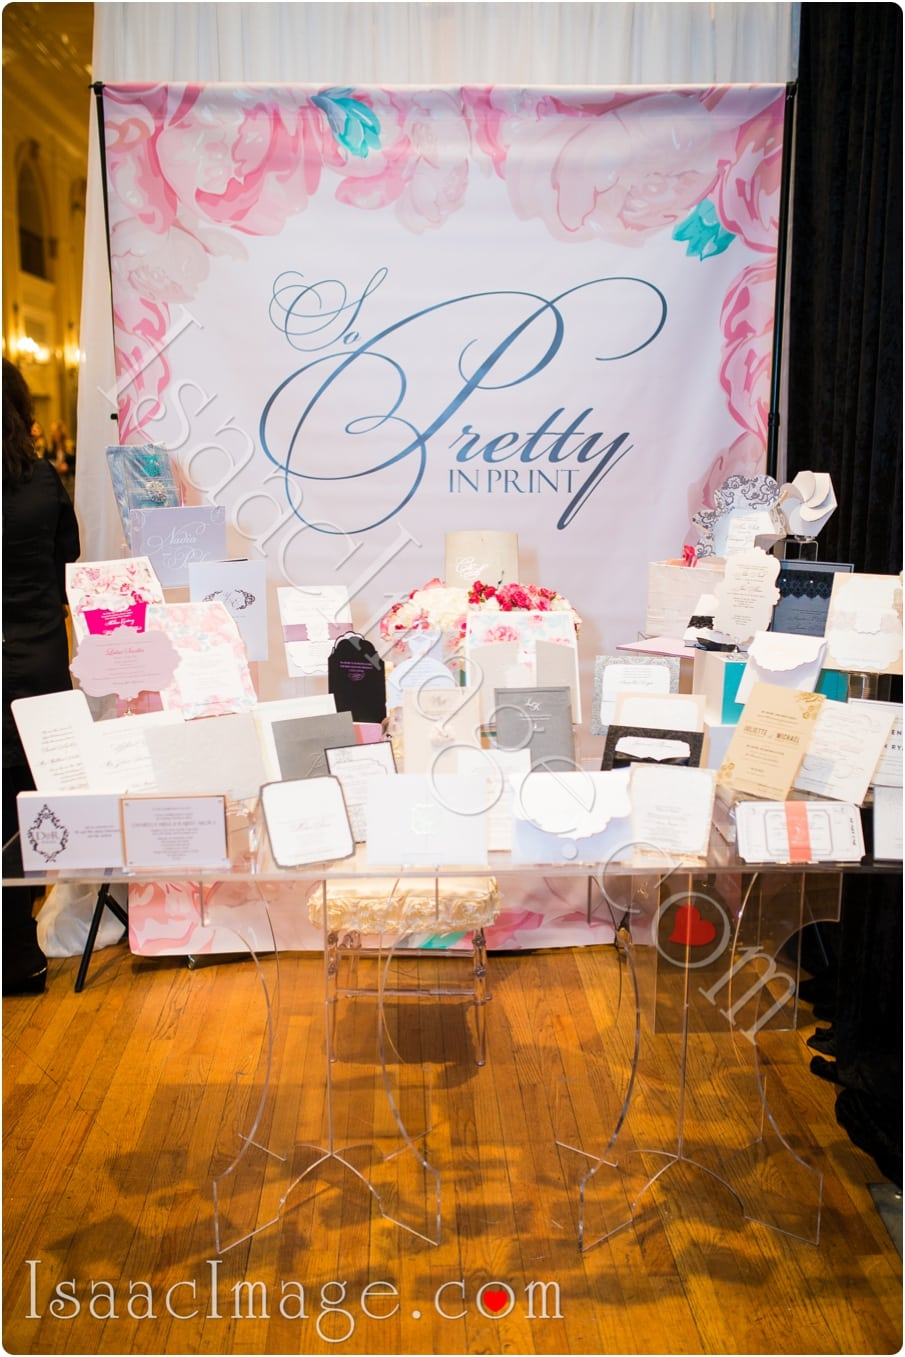 0100 wedluxe bridal show isaacimage.jpg